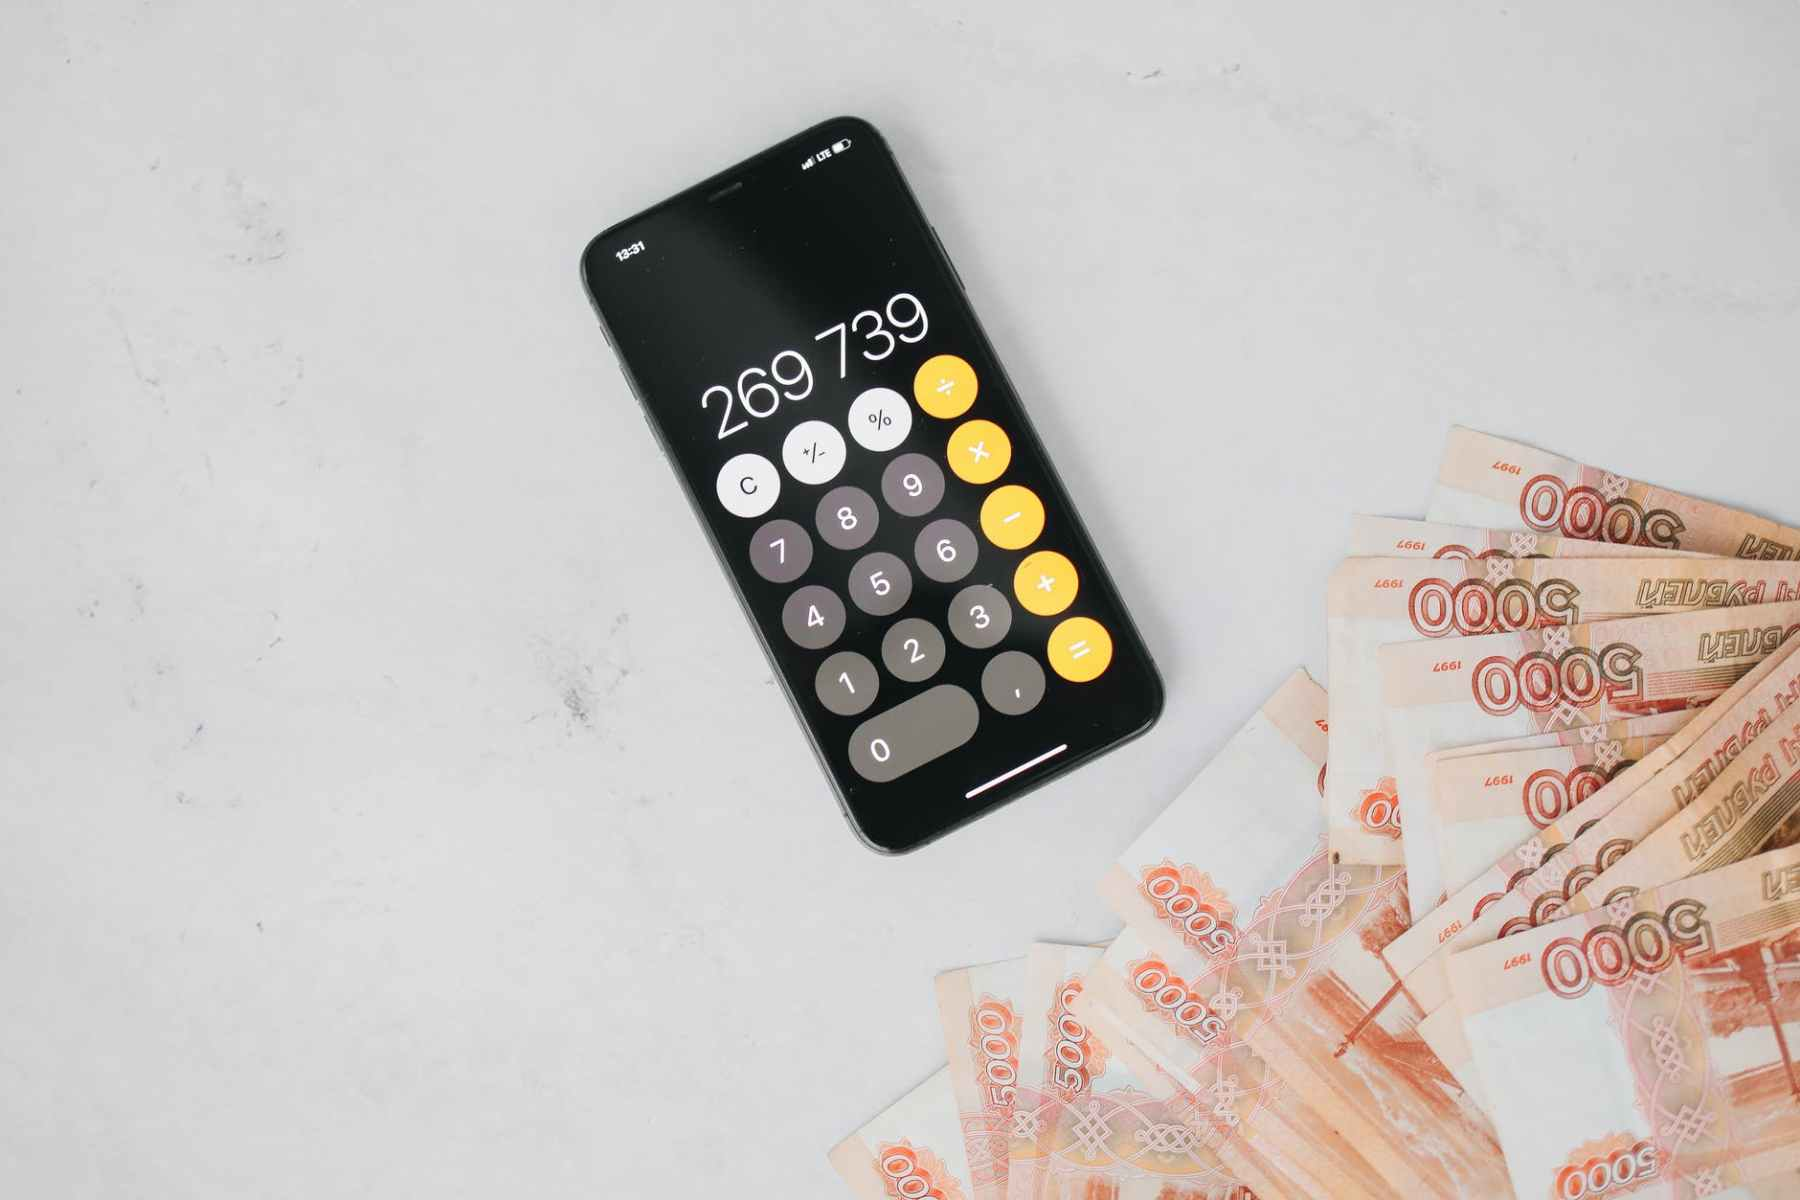 a cellphone calculator and cash on a flat surface